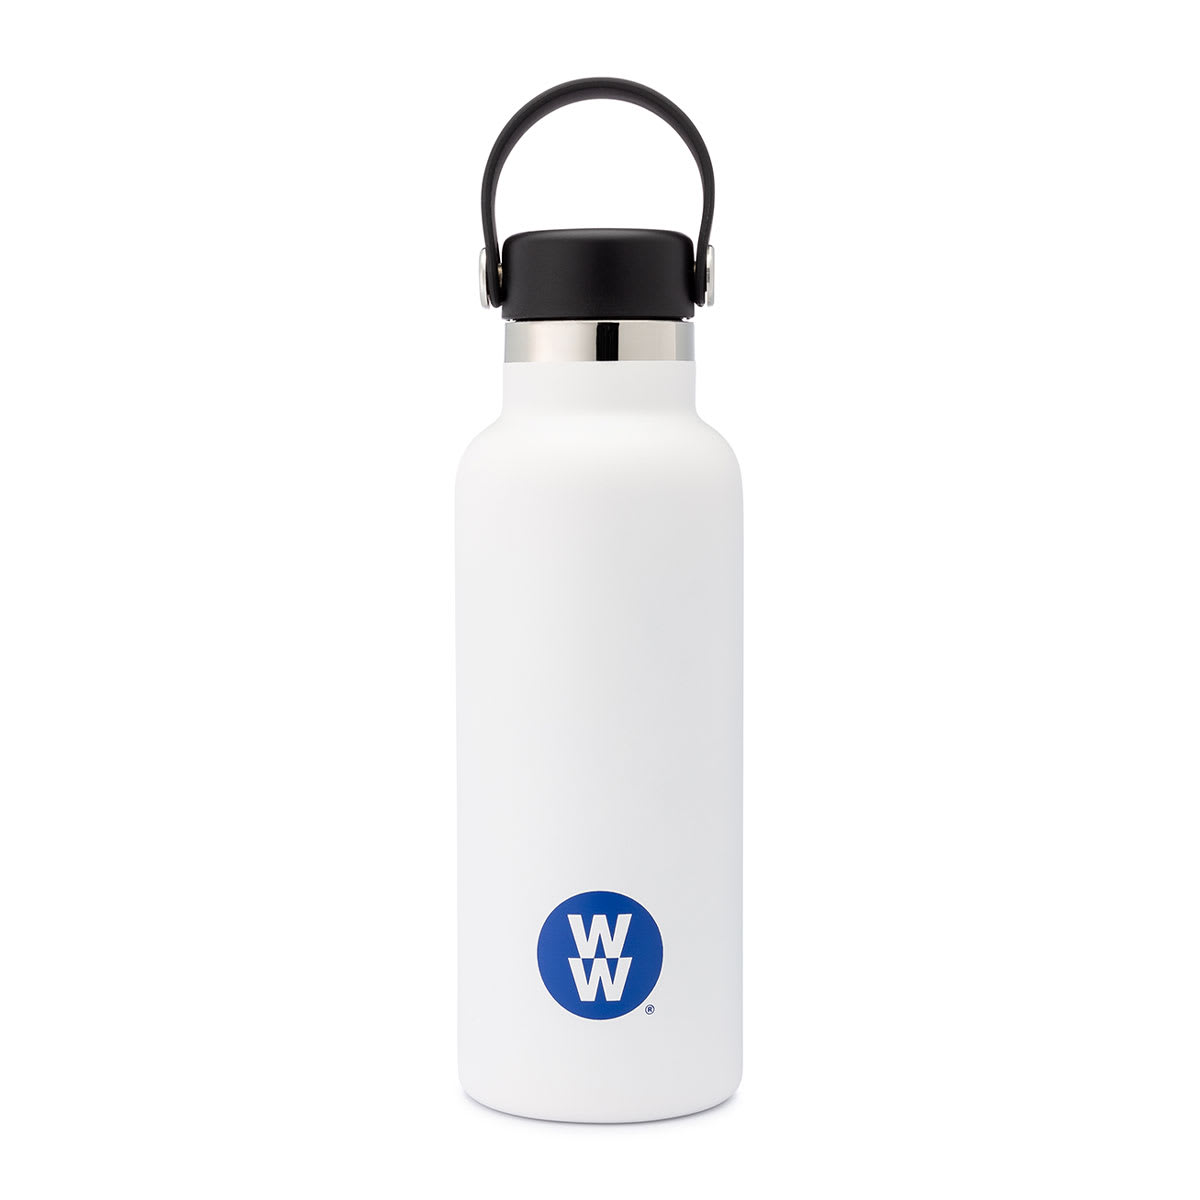 17 oz White Canteen Water Bottle, standard-mouth opening, Double-wall vacuum insulation, , Stainless steel construction.